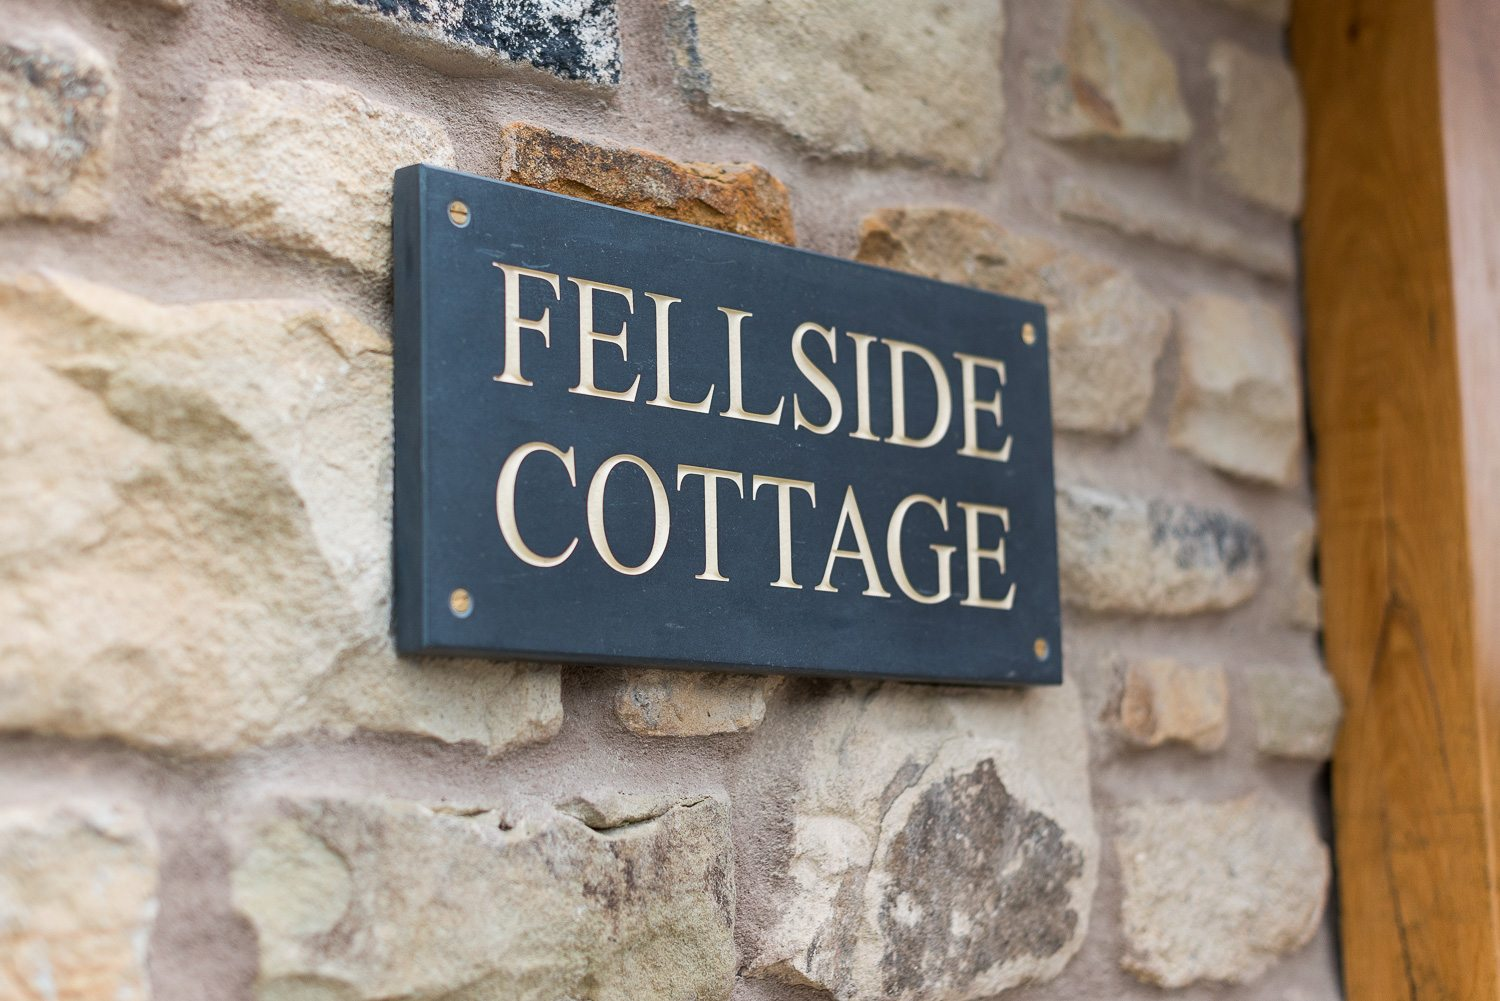 Fellside Cottage Ribble Valley Country Cottages Prices Booking